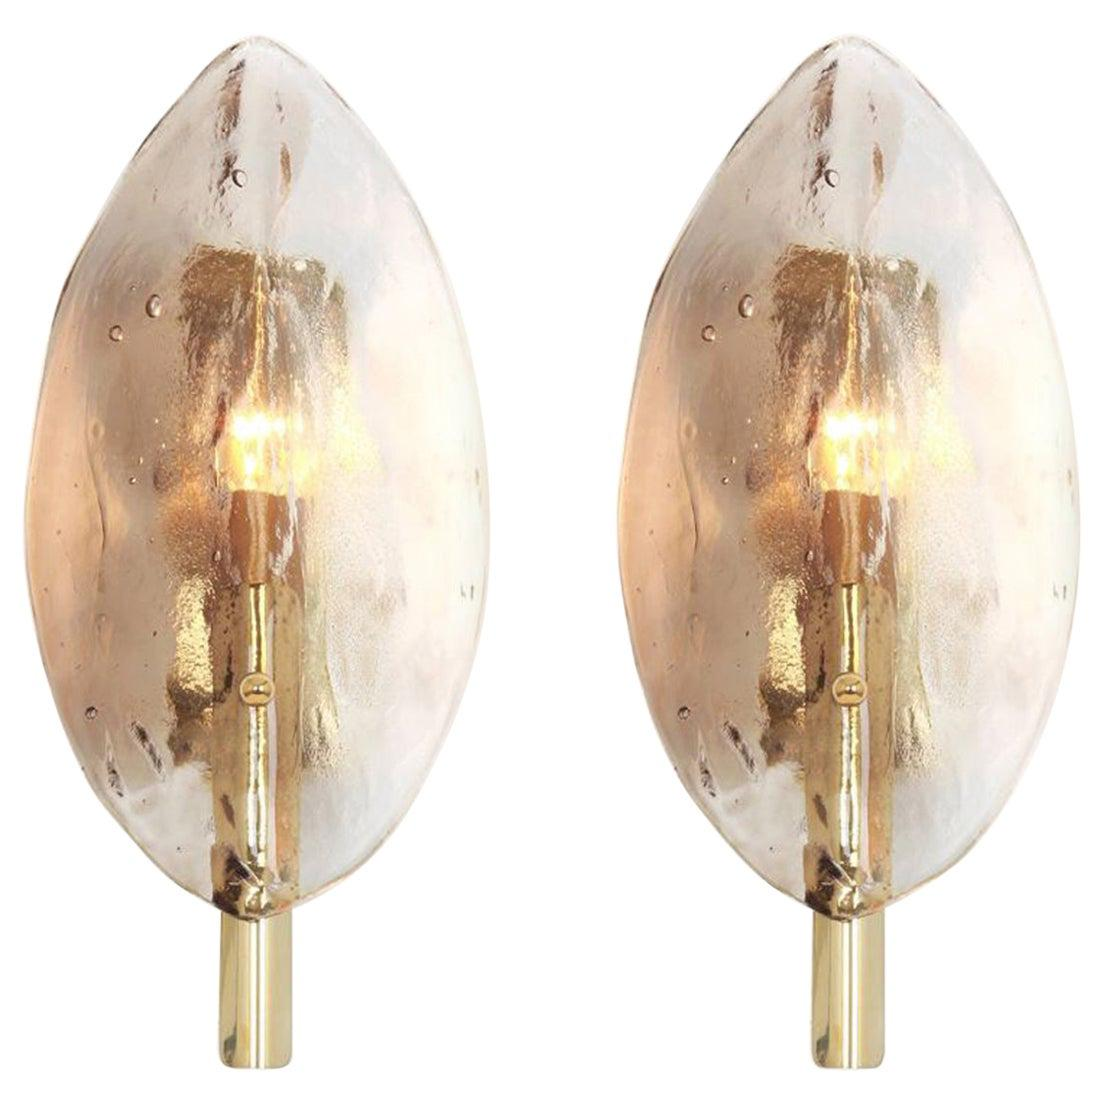 Pair of Mid-Century Modern Stylized-Leaf Wall Sconces, Kalmar, 3-Pair Available